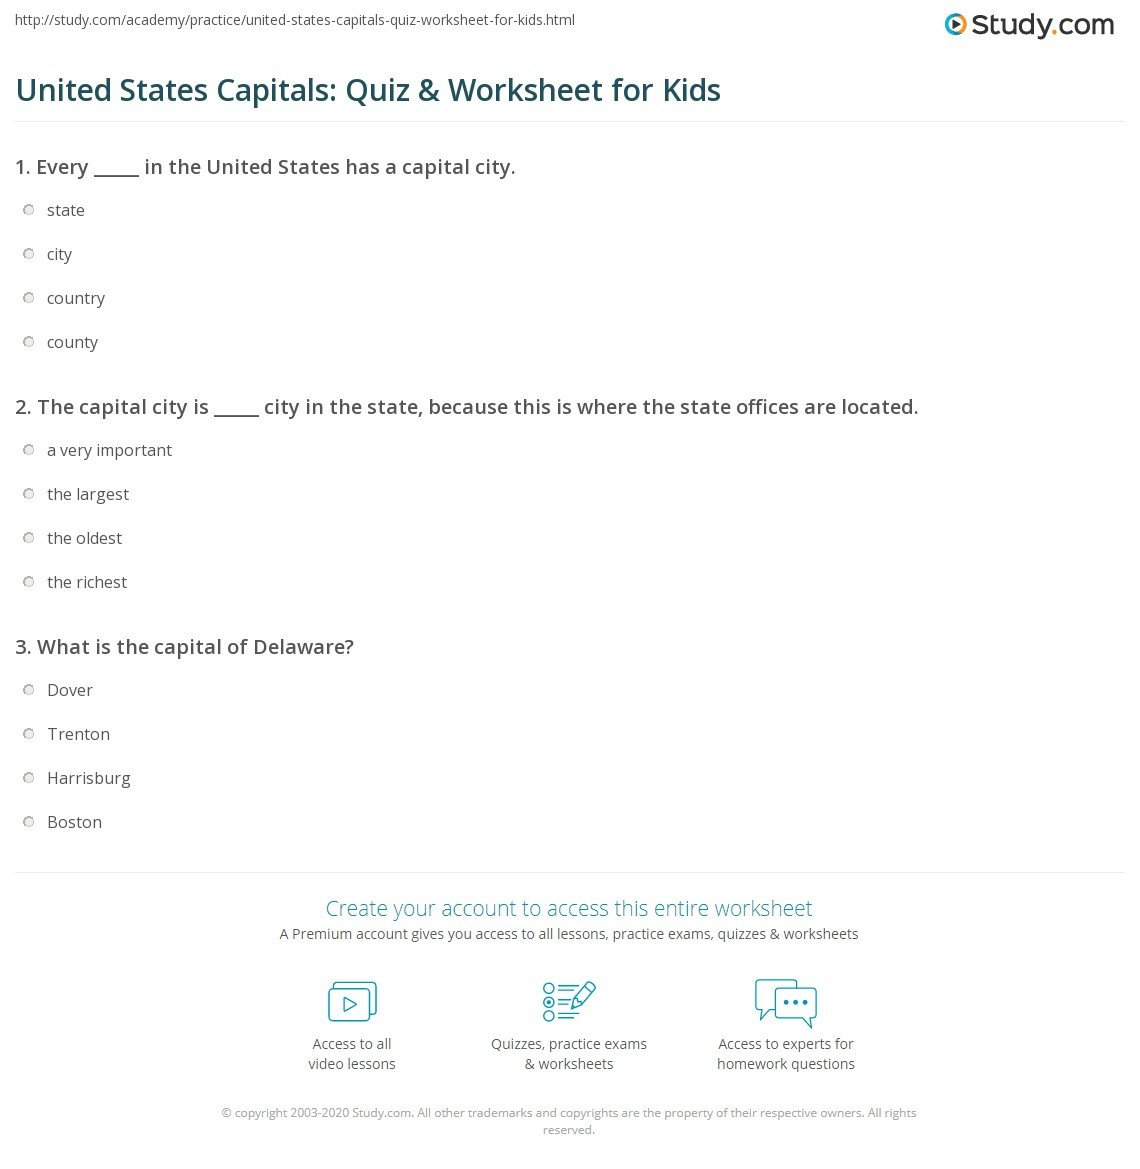 States and Capitals Quiz Worksheet State Capital Quiz Worksheet